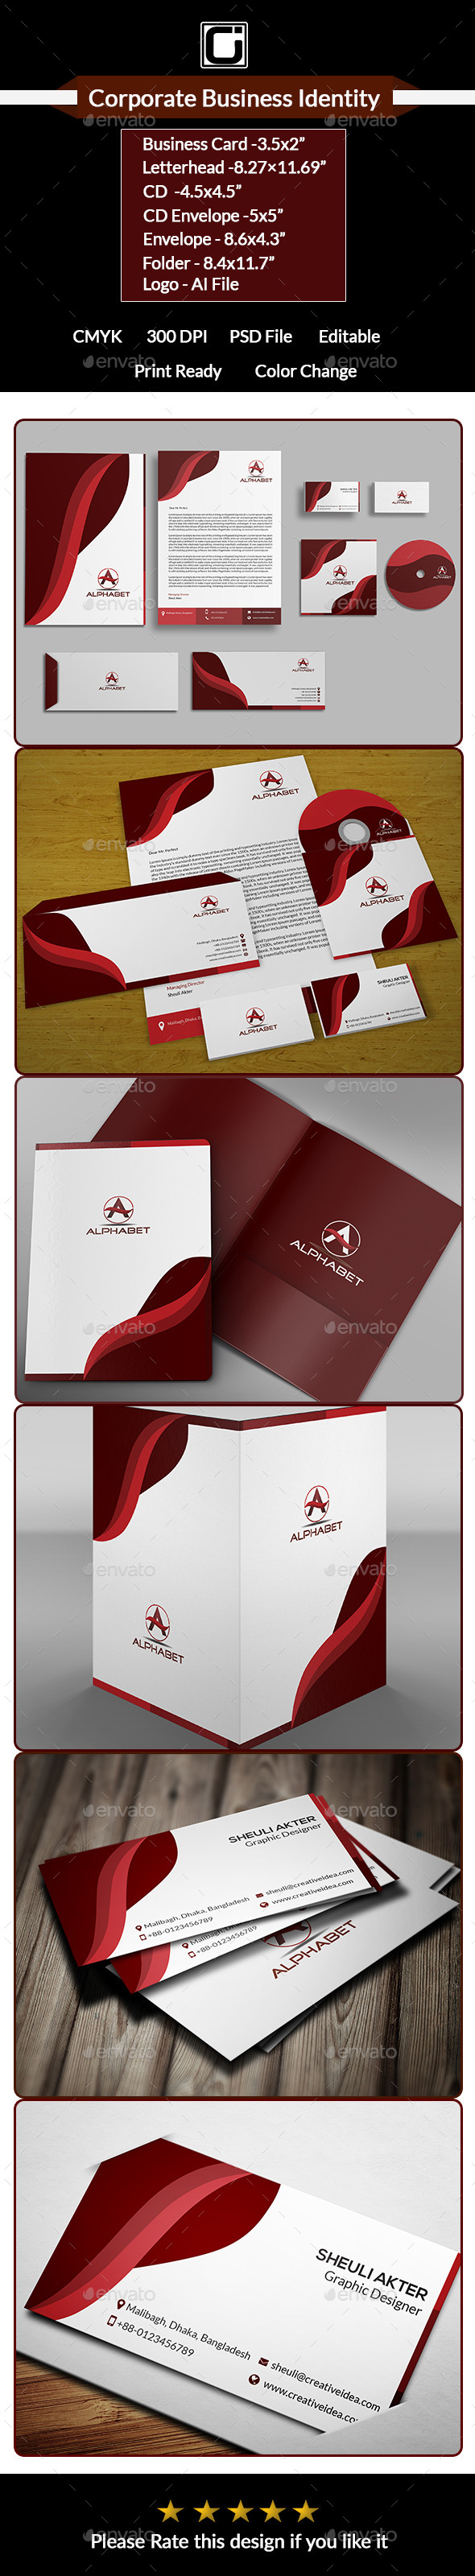 GraphicRiver Corporate Business Identity 9675338